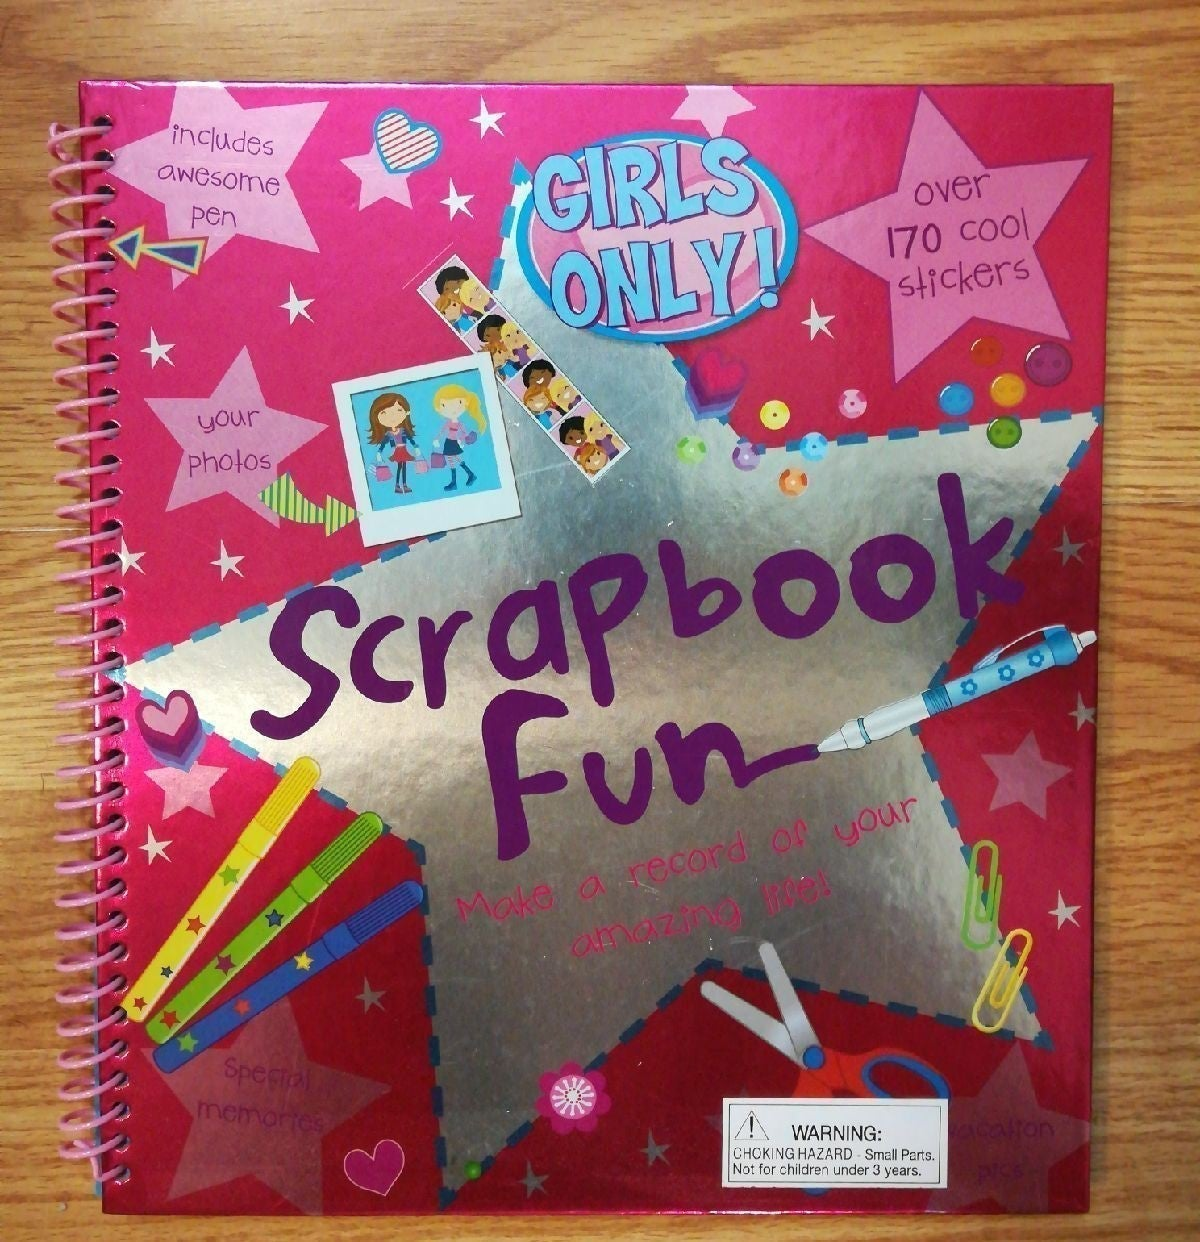 Scrapbook for girls